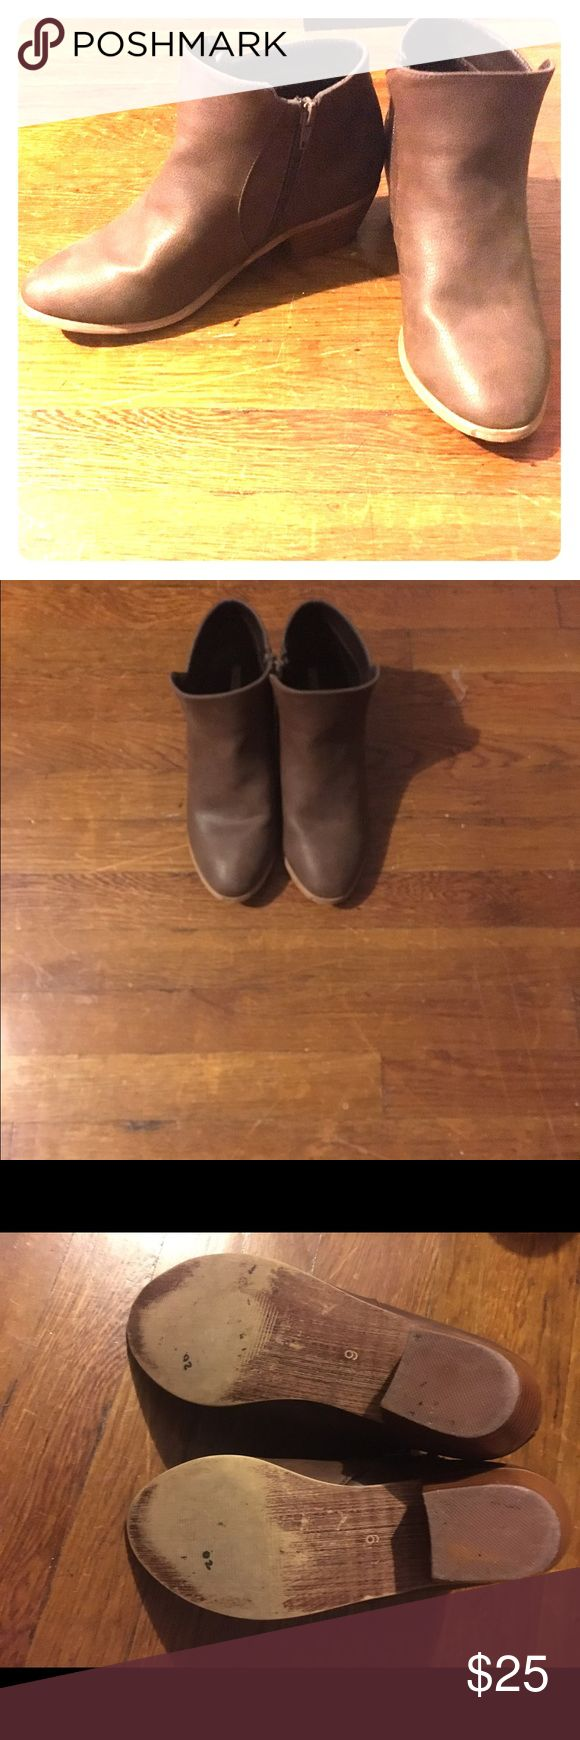 Ecote short ankle boots Short brown ankle boots. Gently worn, but still in great condition. Ecote Shoes Ankle Boots & Booties